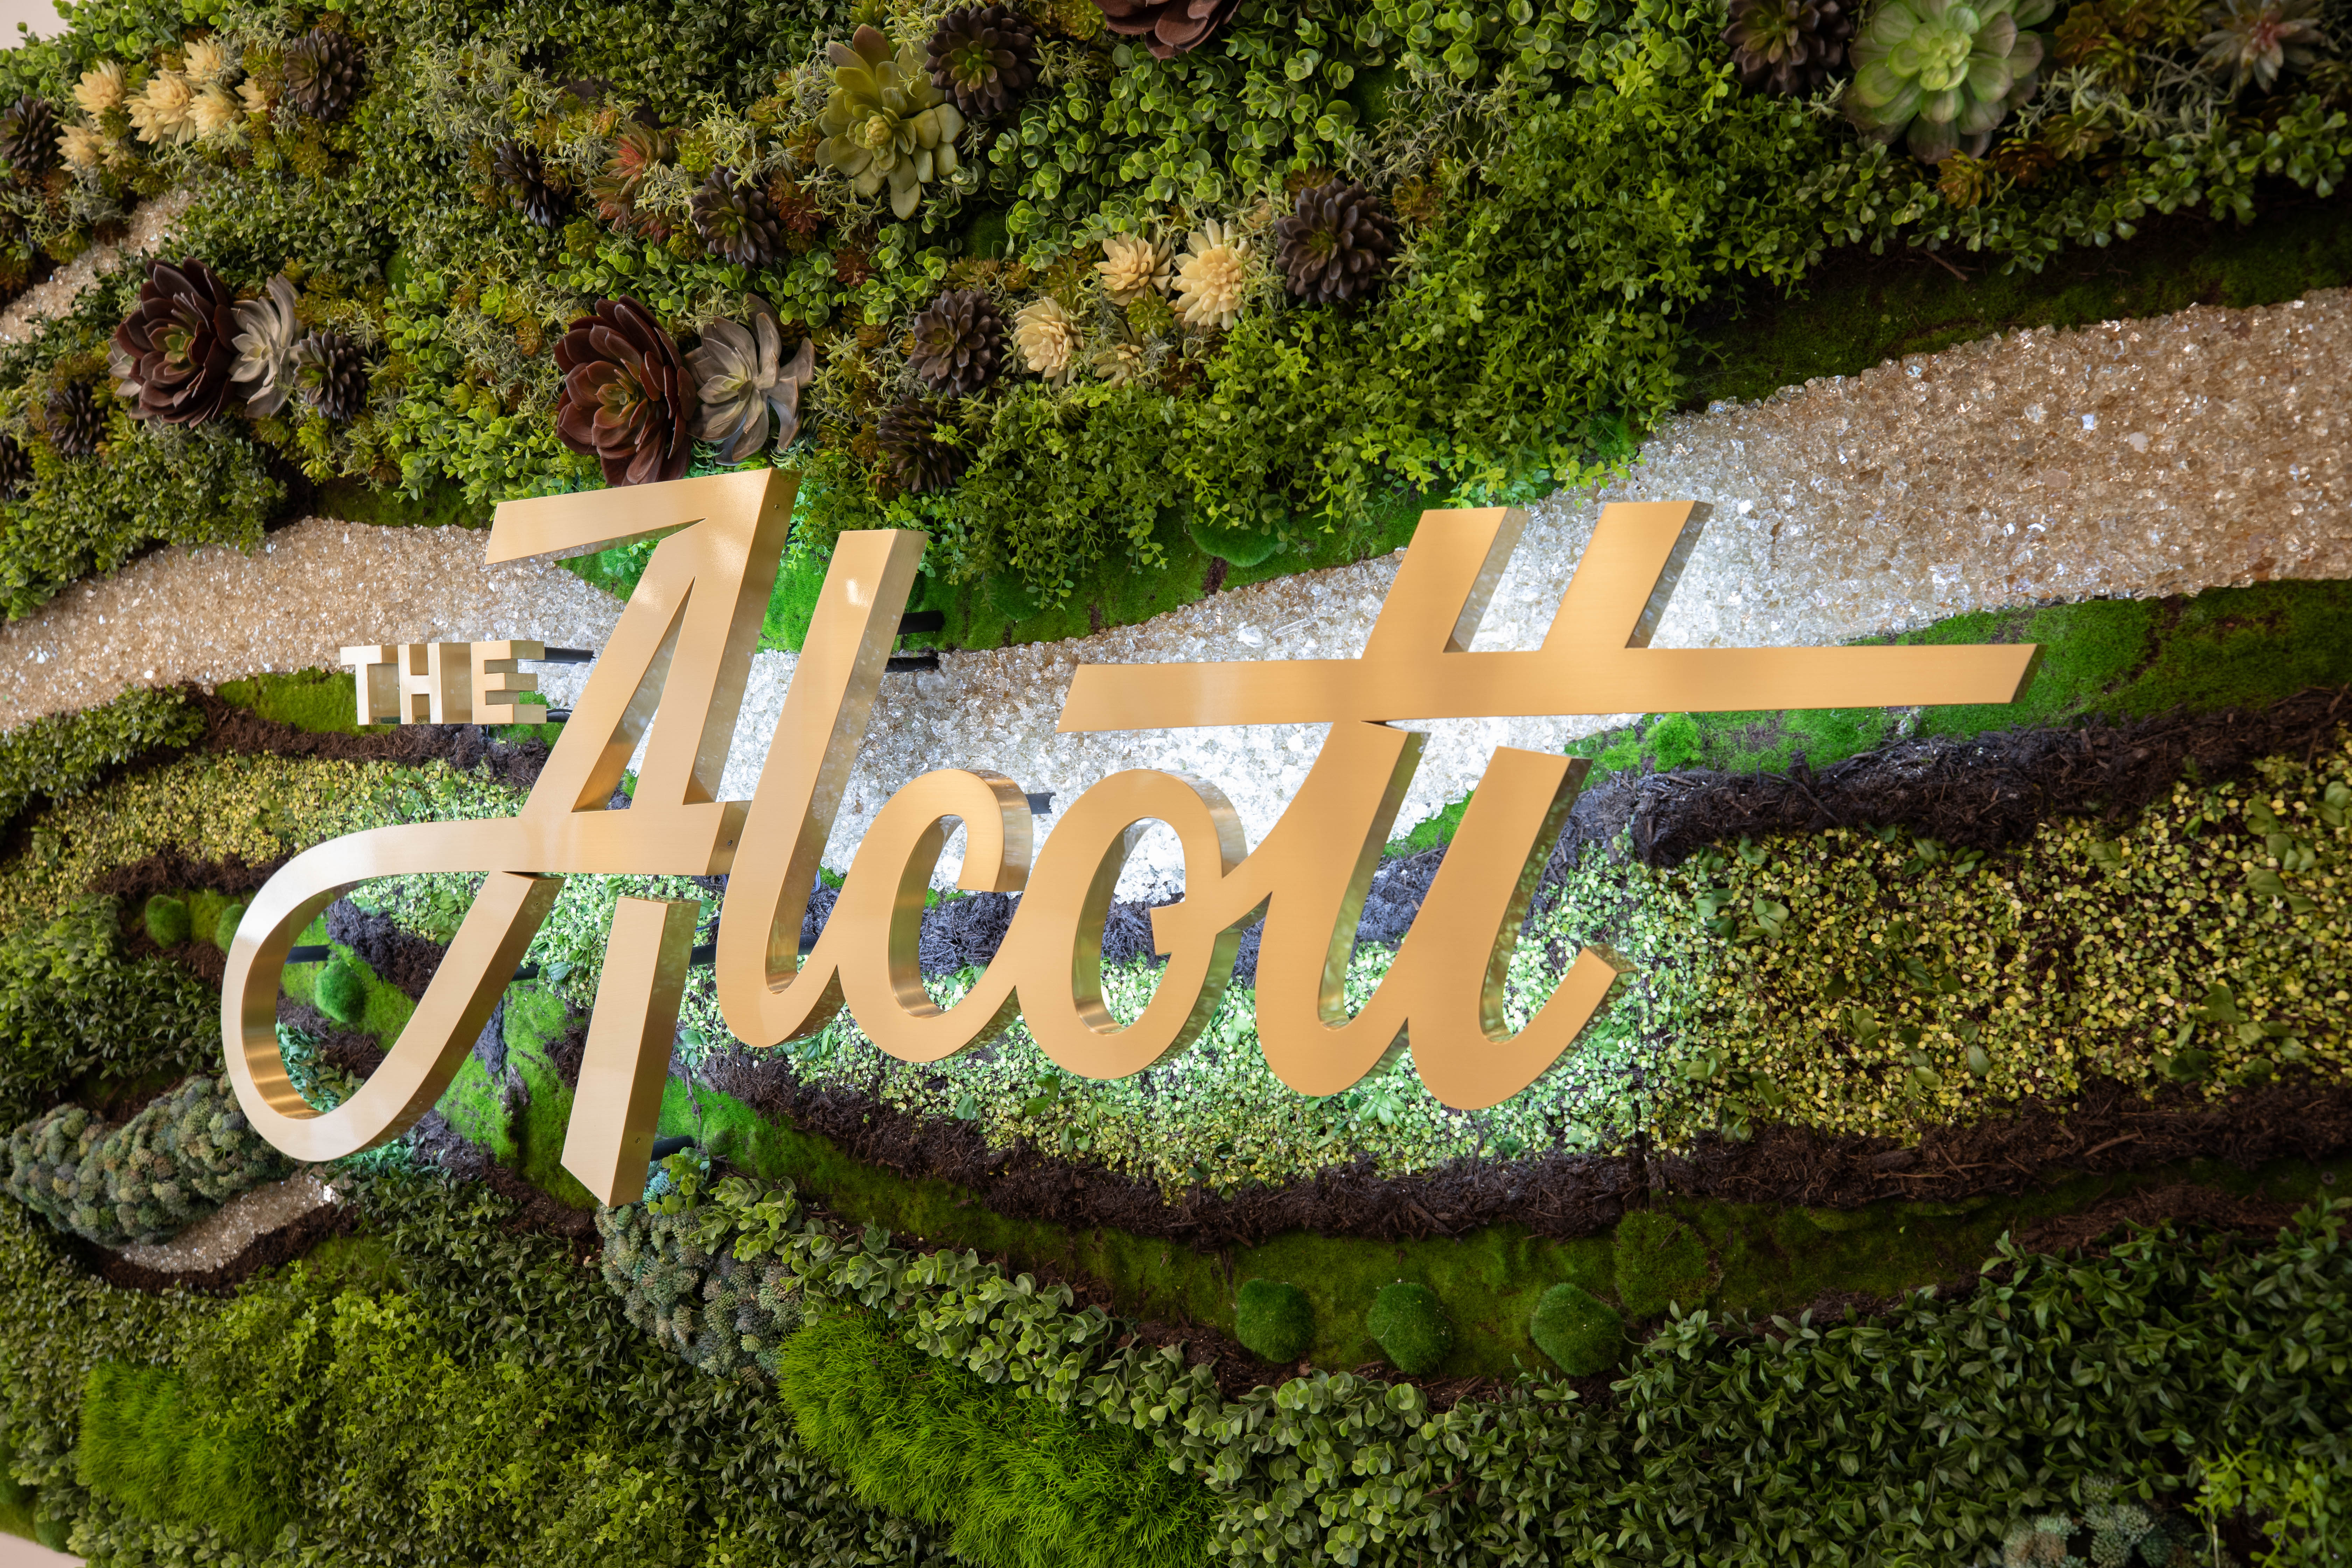 The Alcott sign on a living wall in Denver, Colorado